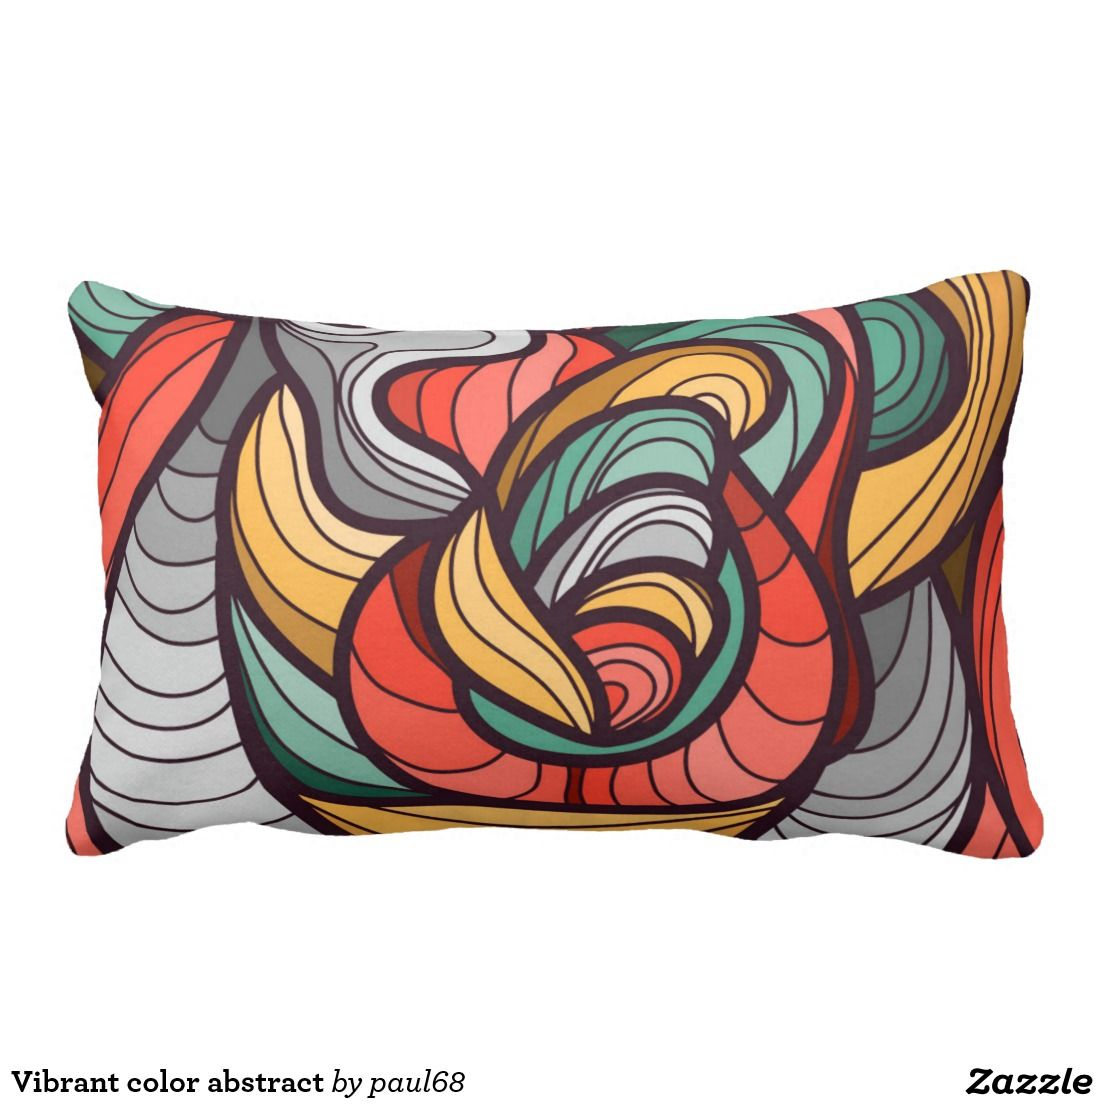 Vibrant color abstract pillow